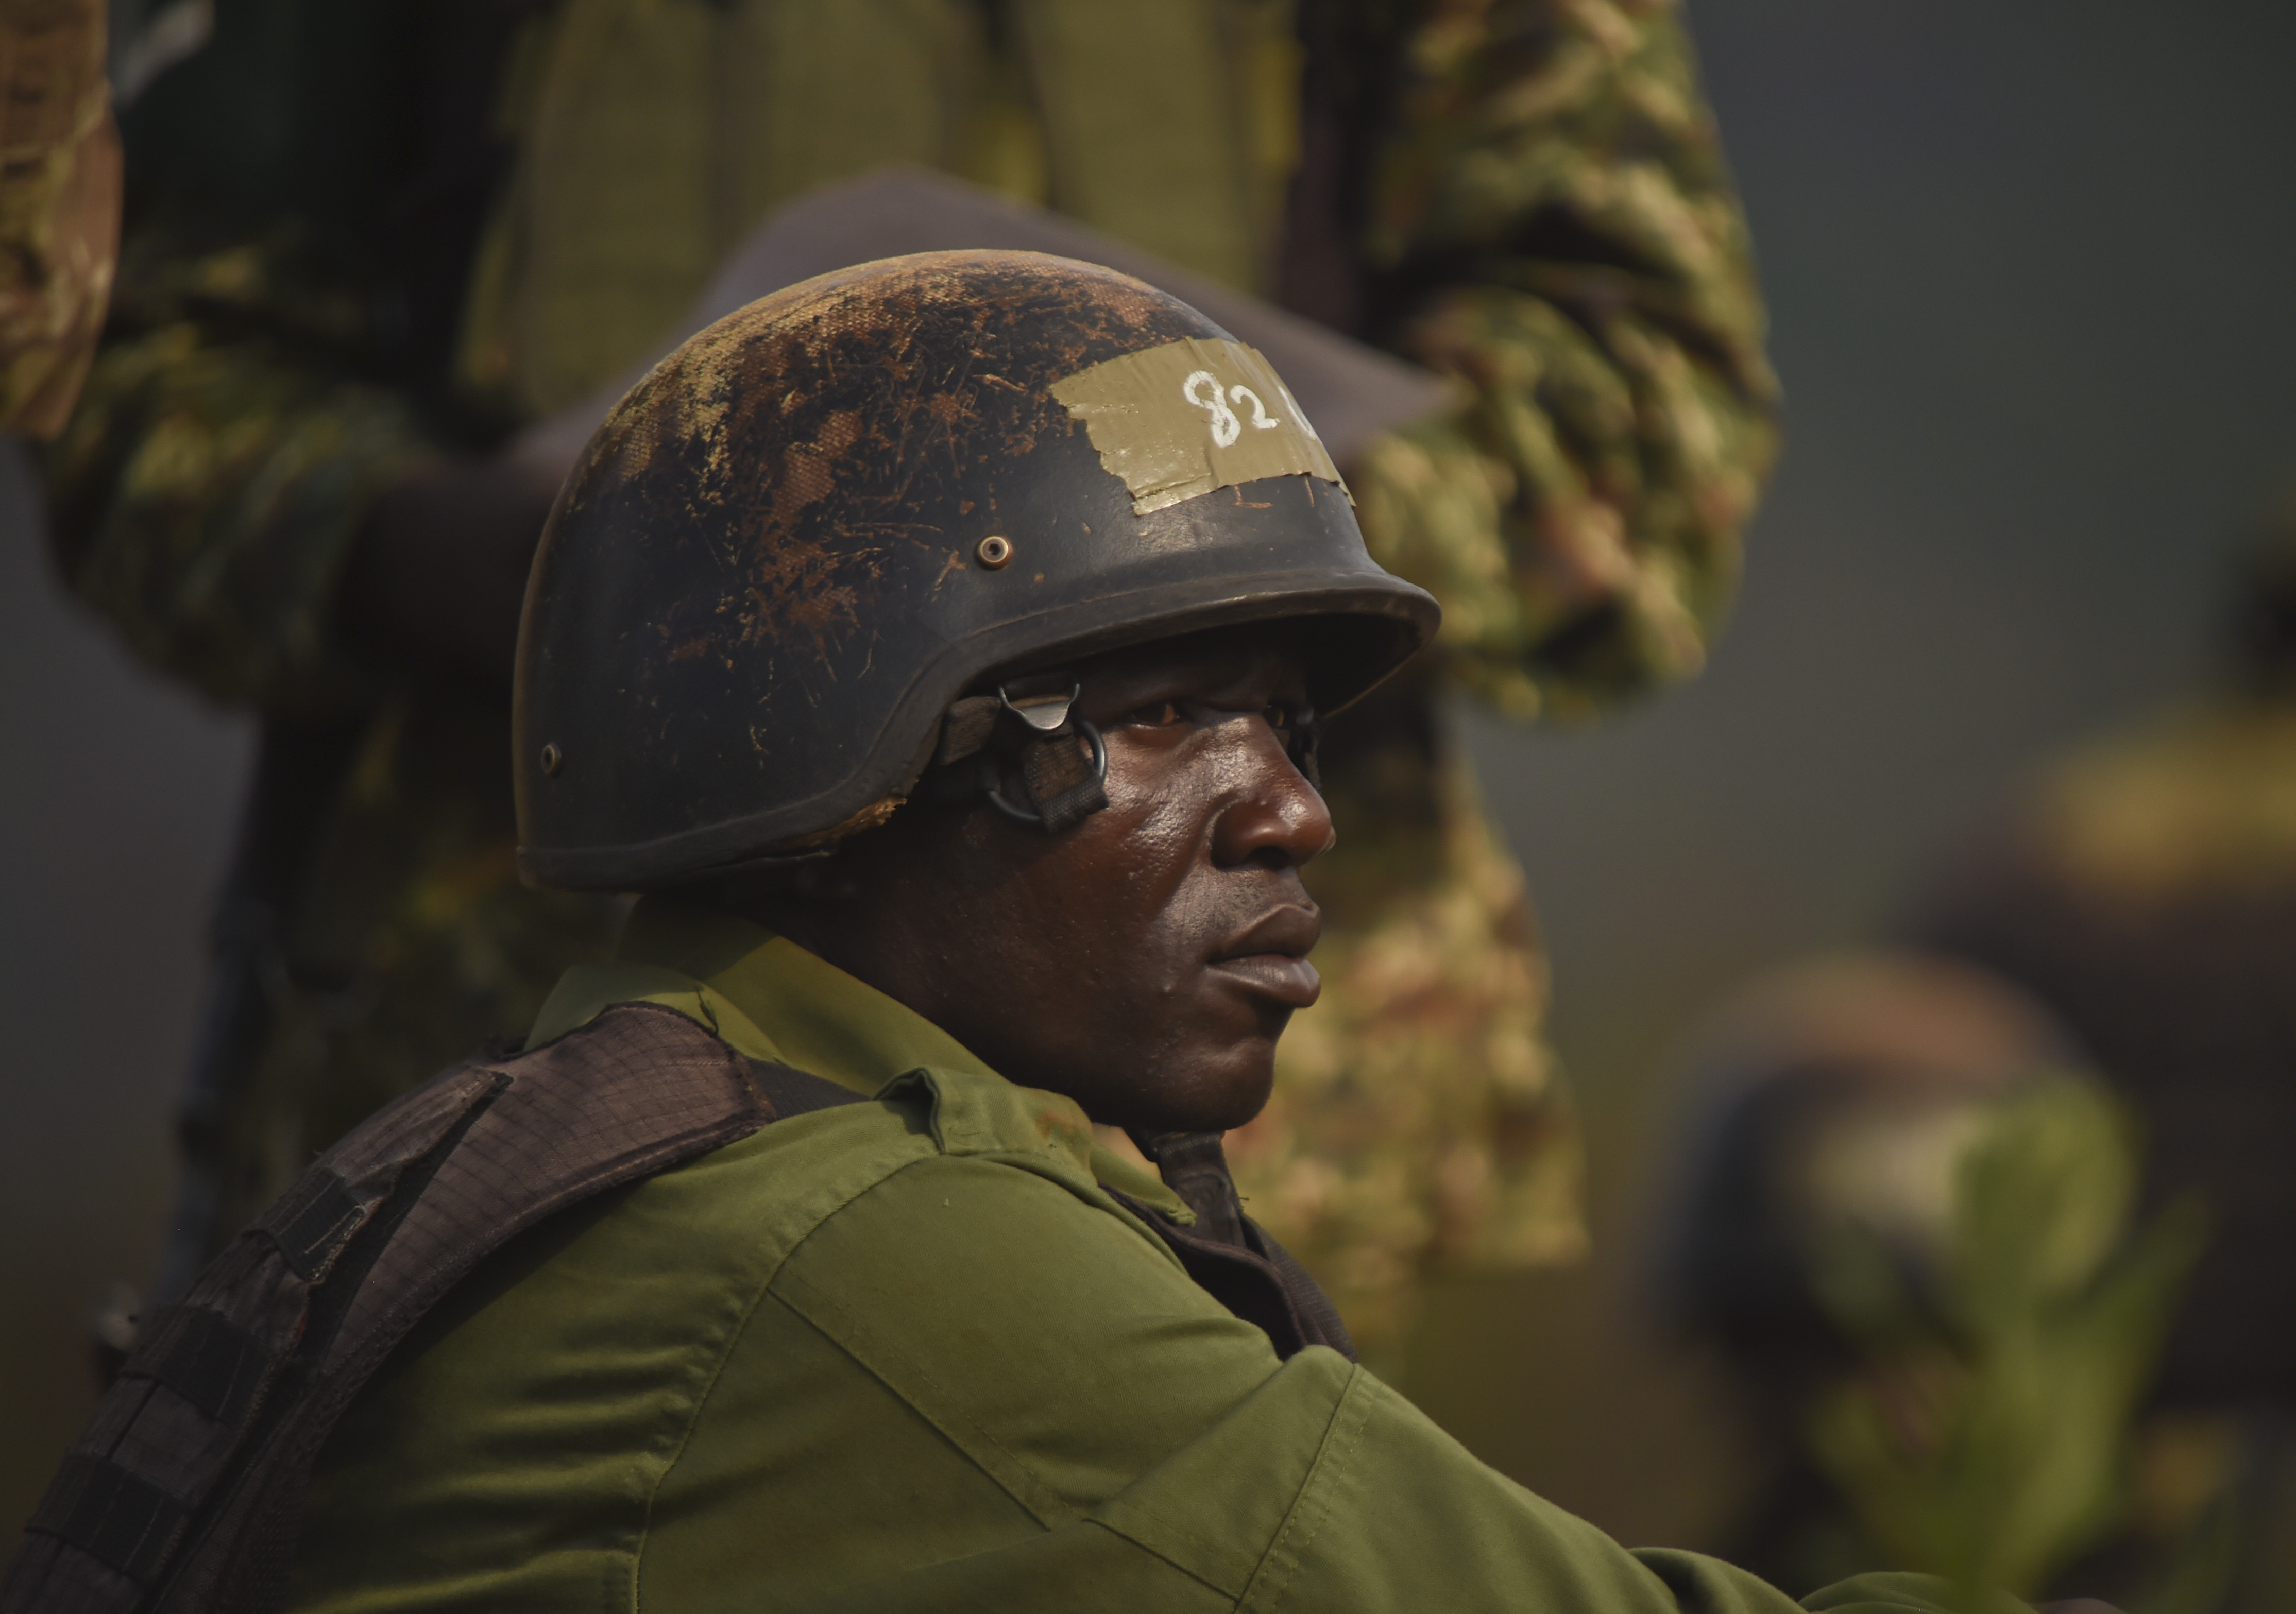 A Uganda People's Defense Force soldier, Ugandan Battle Group 22 (UGABAG 22), waits for the next round of mortar fire during a live fire exercise at Camp Singo, Uganda, Feb. 27, 2017. The training exercise is part of a 12-week pre-deployment training course for UGABAG 22. (U.S. Air National Guard photo by Staff Sgt. Penny Snoozy)